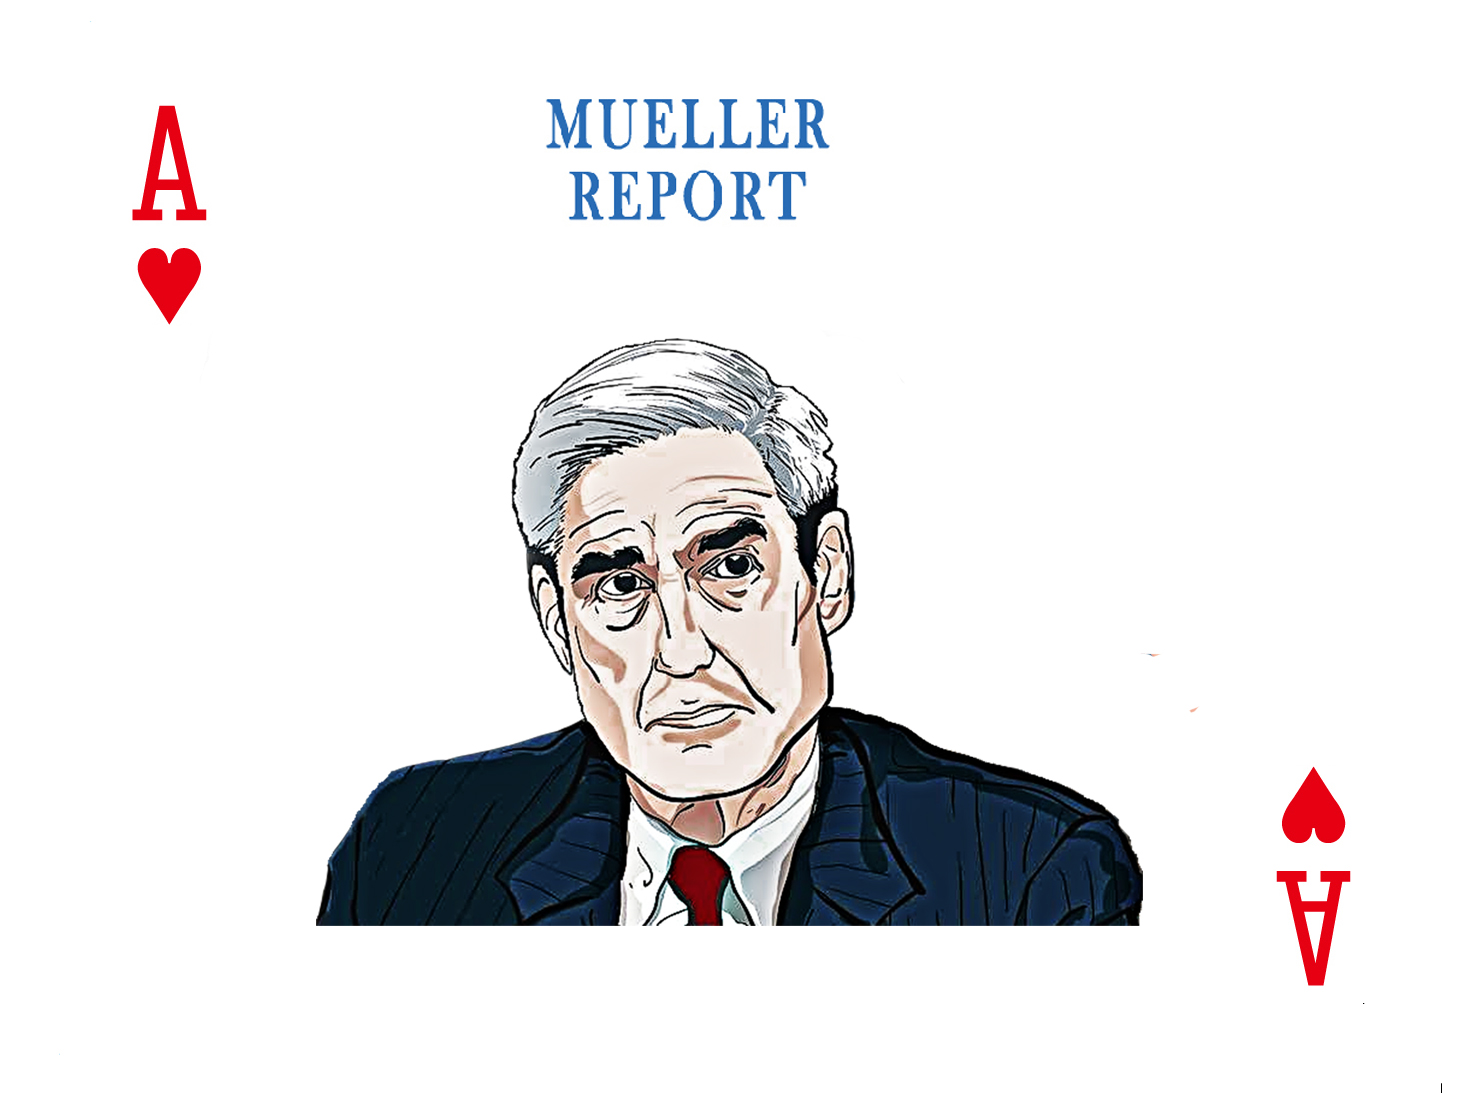 Mueller Report Playing Cards